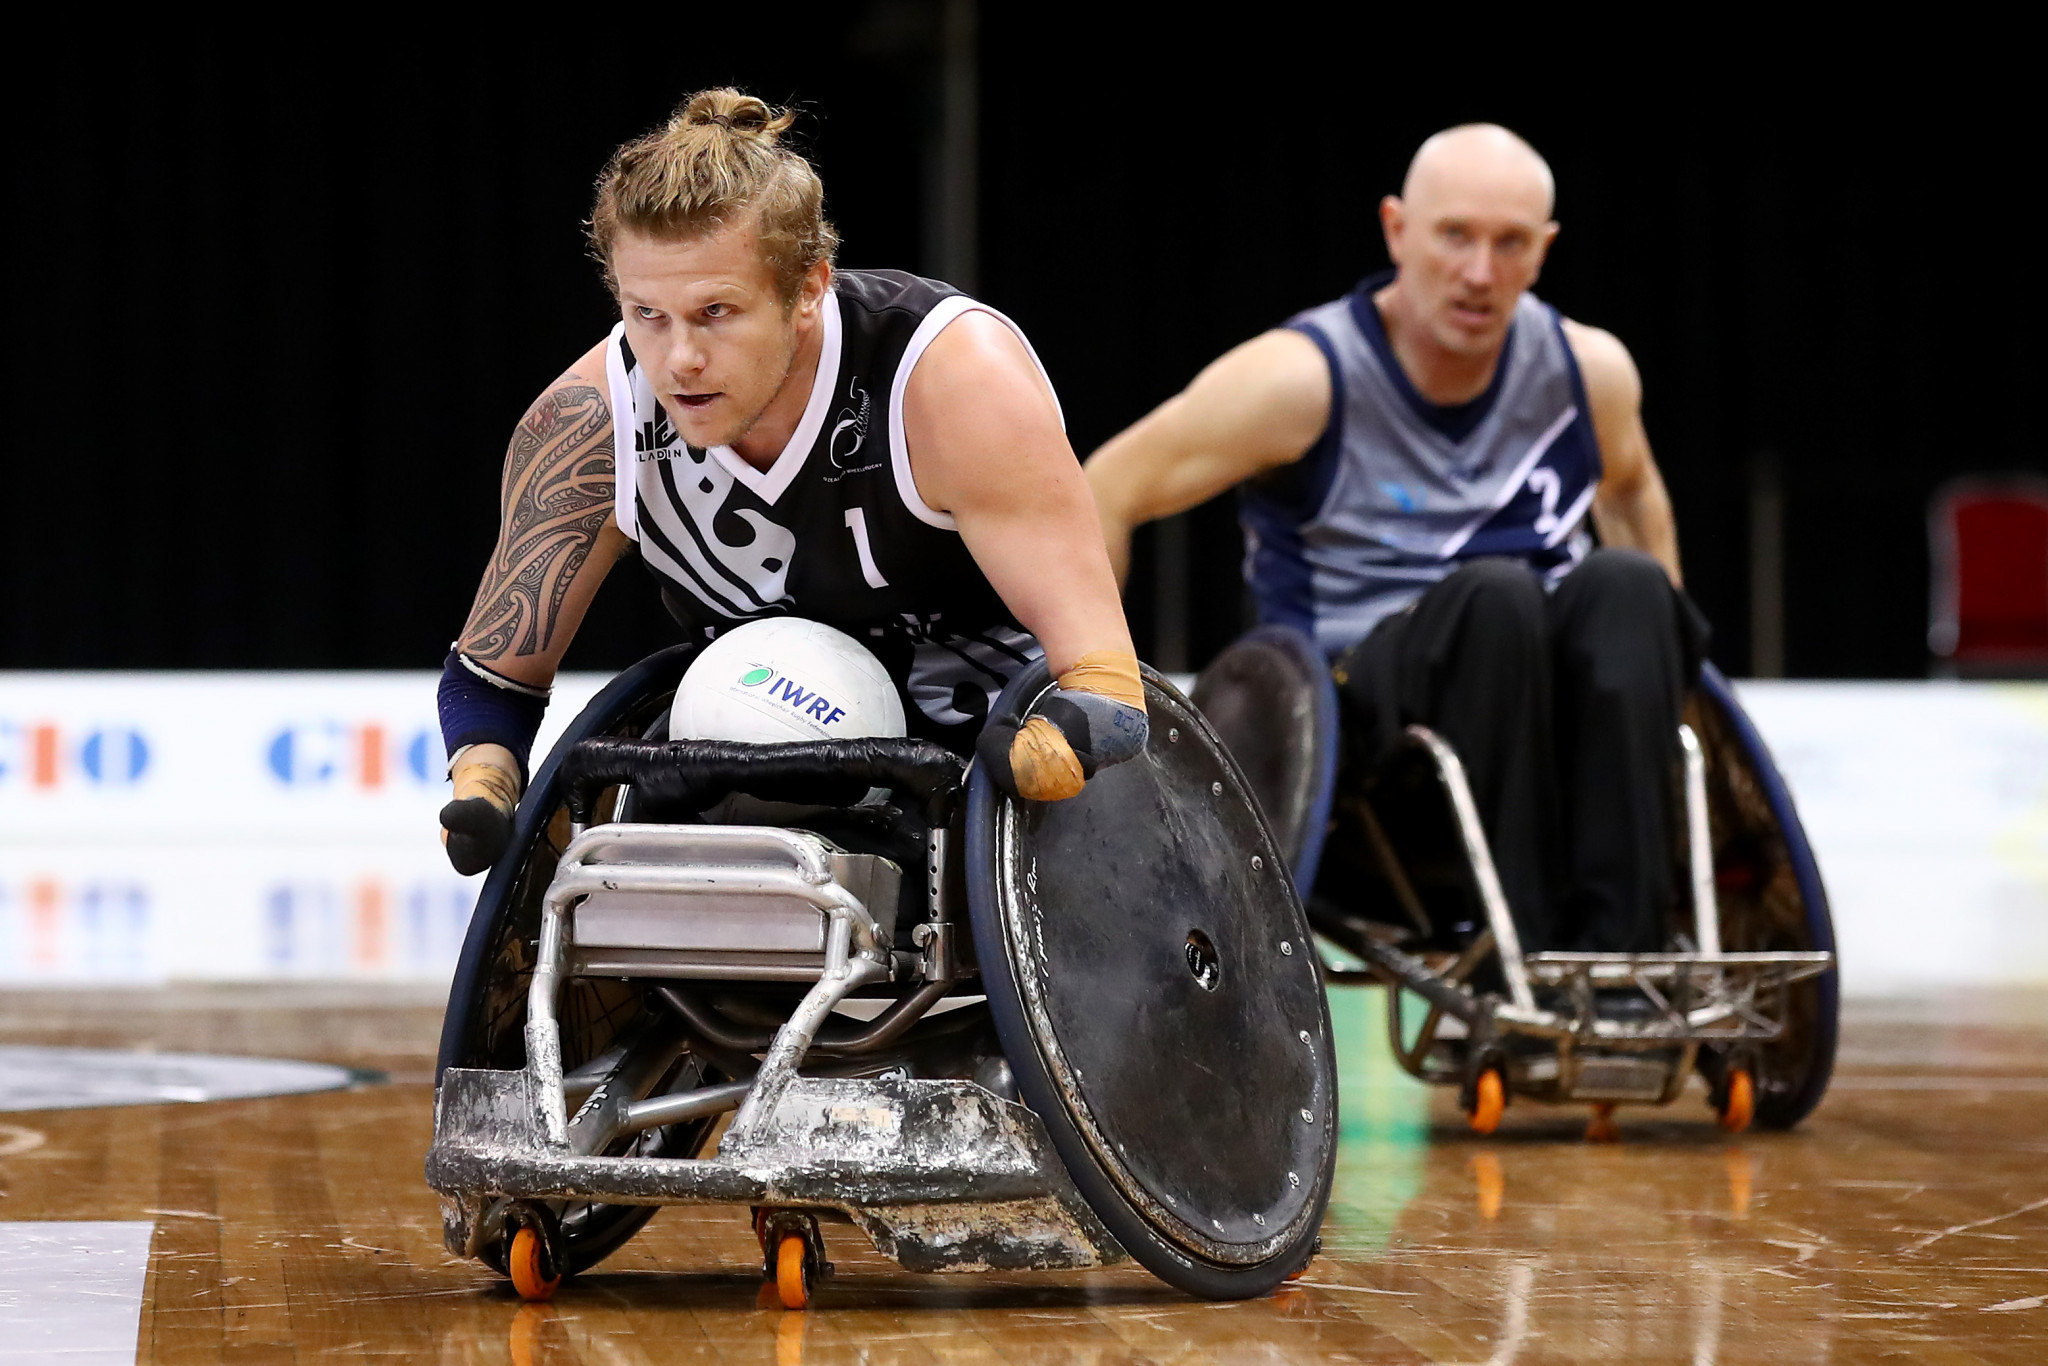 Cameron Leslie, who was scheduled to represent New Zealand in wheelchair rugby and swimming at the Tokyo 2020 Paralympic Games, has stepped down for family reasons © Getty Images